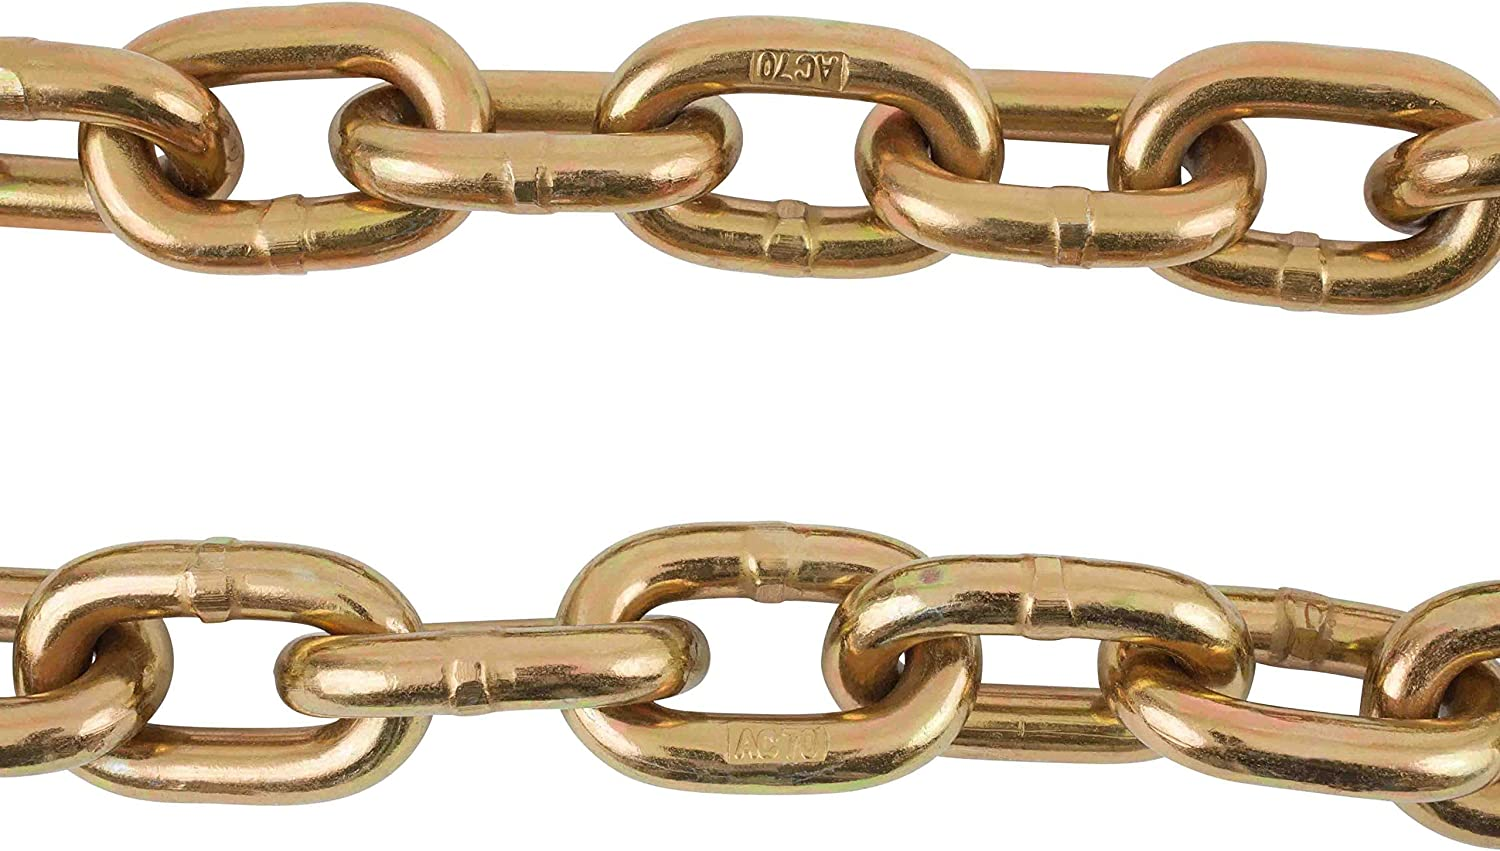 Transport Chains 4 4 and Ratchet Binder Boomer Mytee Products 3//8 12 G70 Chain